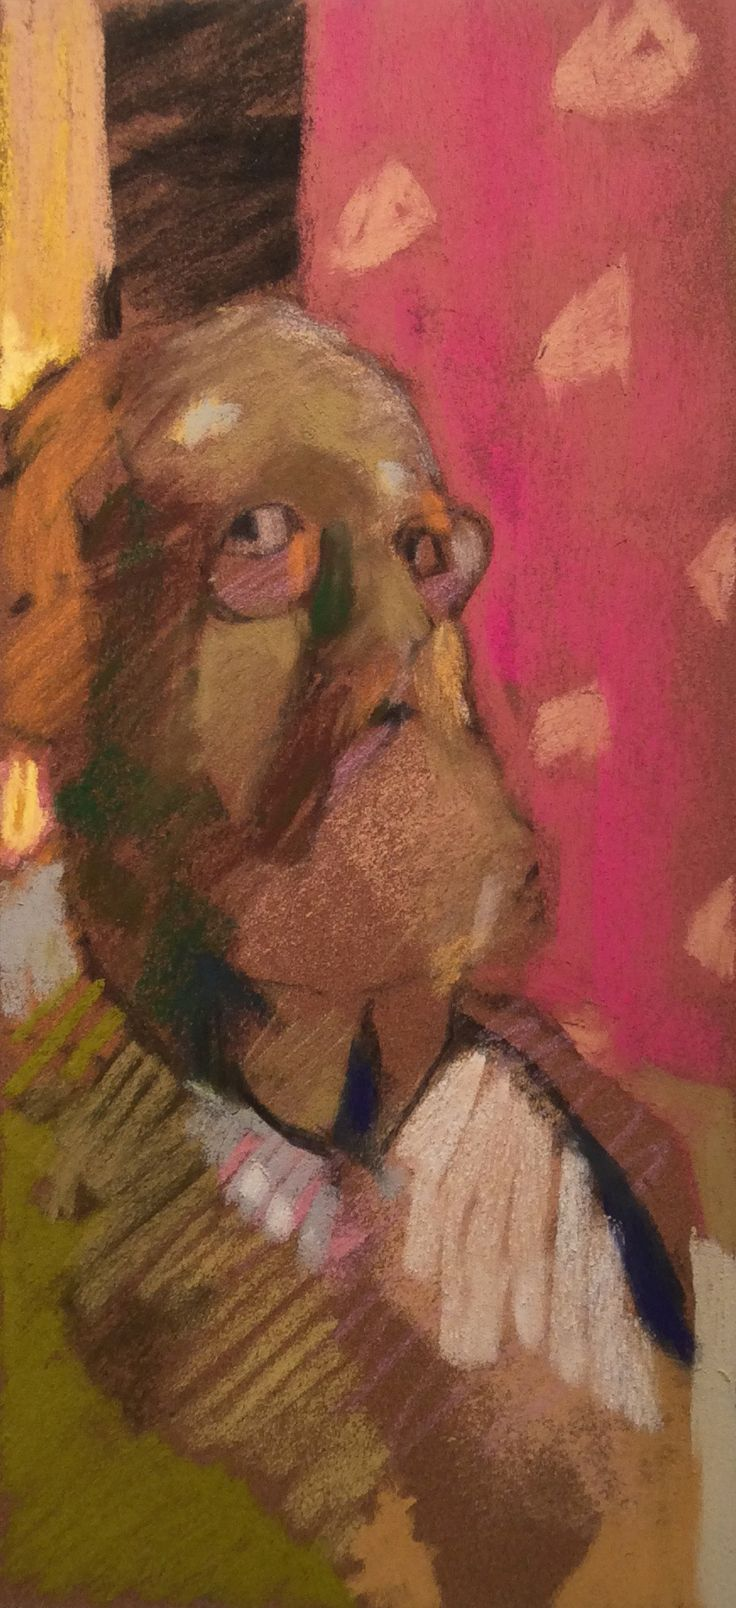 "Studio Portrait with Red and Yellow. 2015. Pastel. 12"" x 5.6"" Casey Klahn."